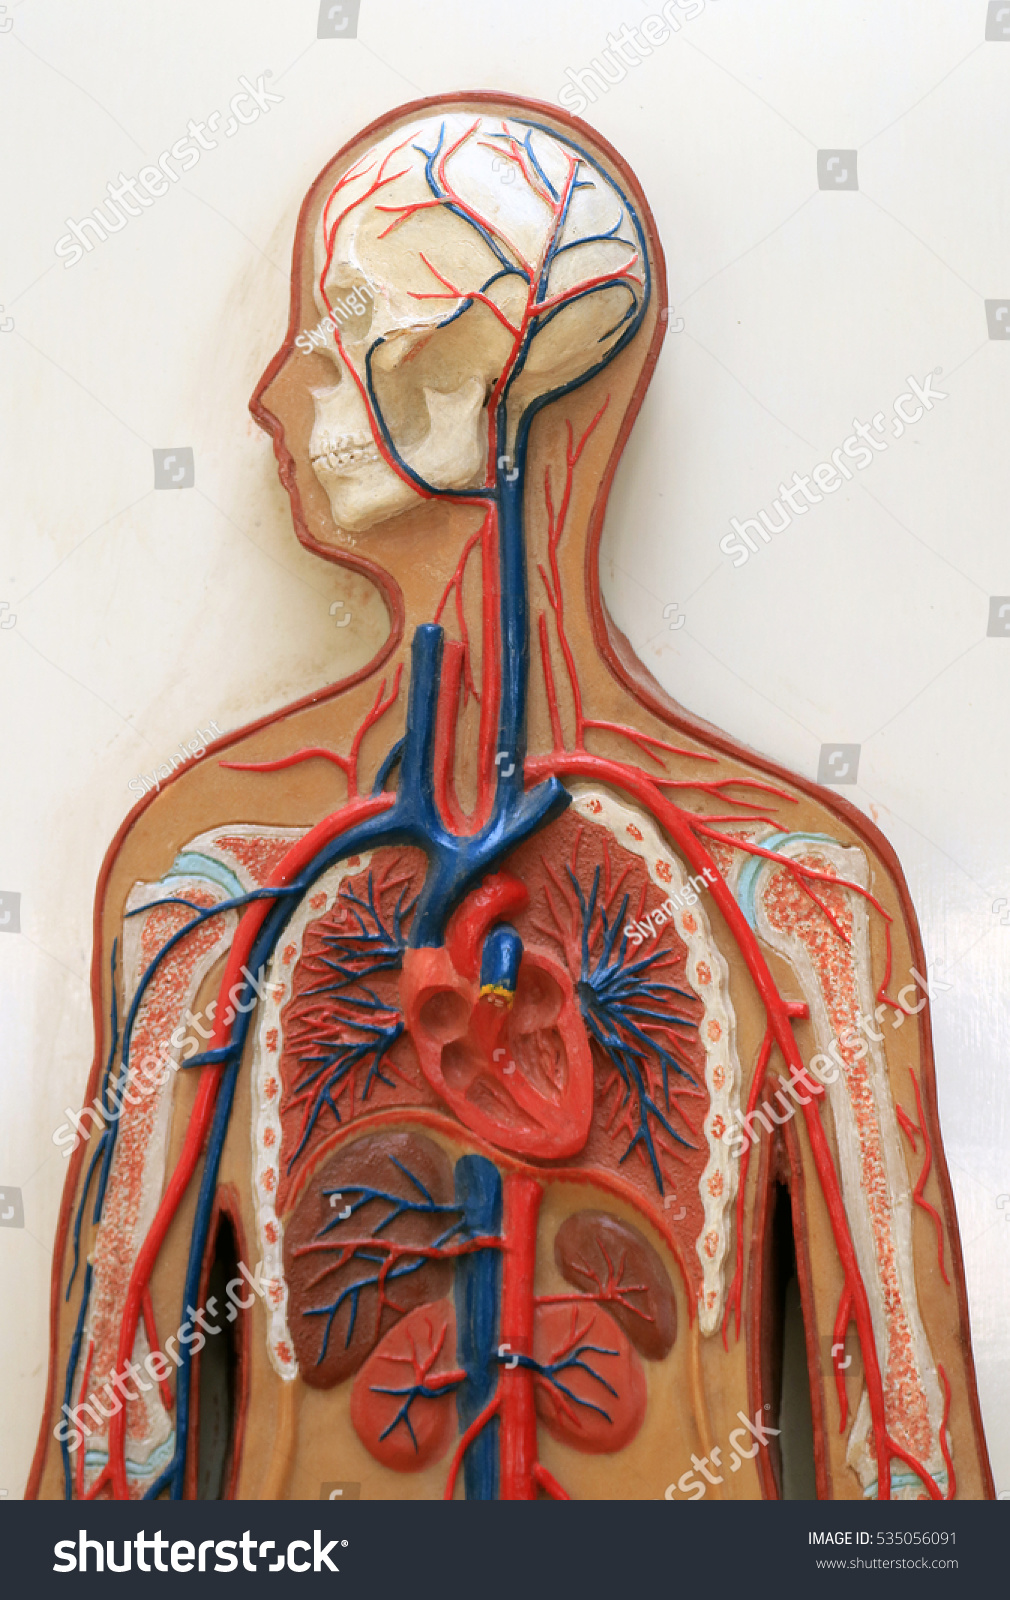 Human Body Blood Vessel Anatomy Learning Stock Photo (Edit Now ...